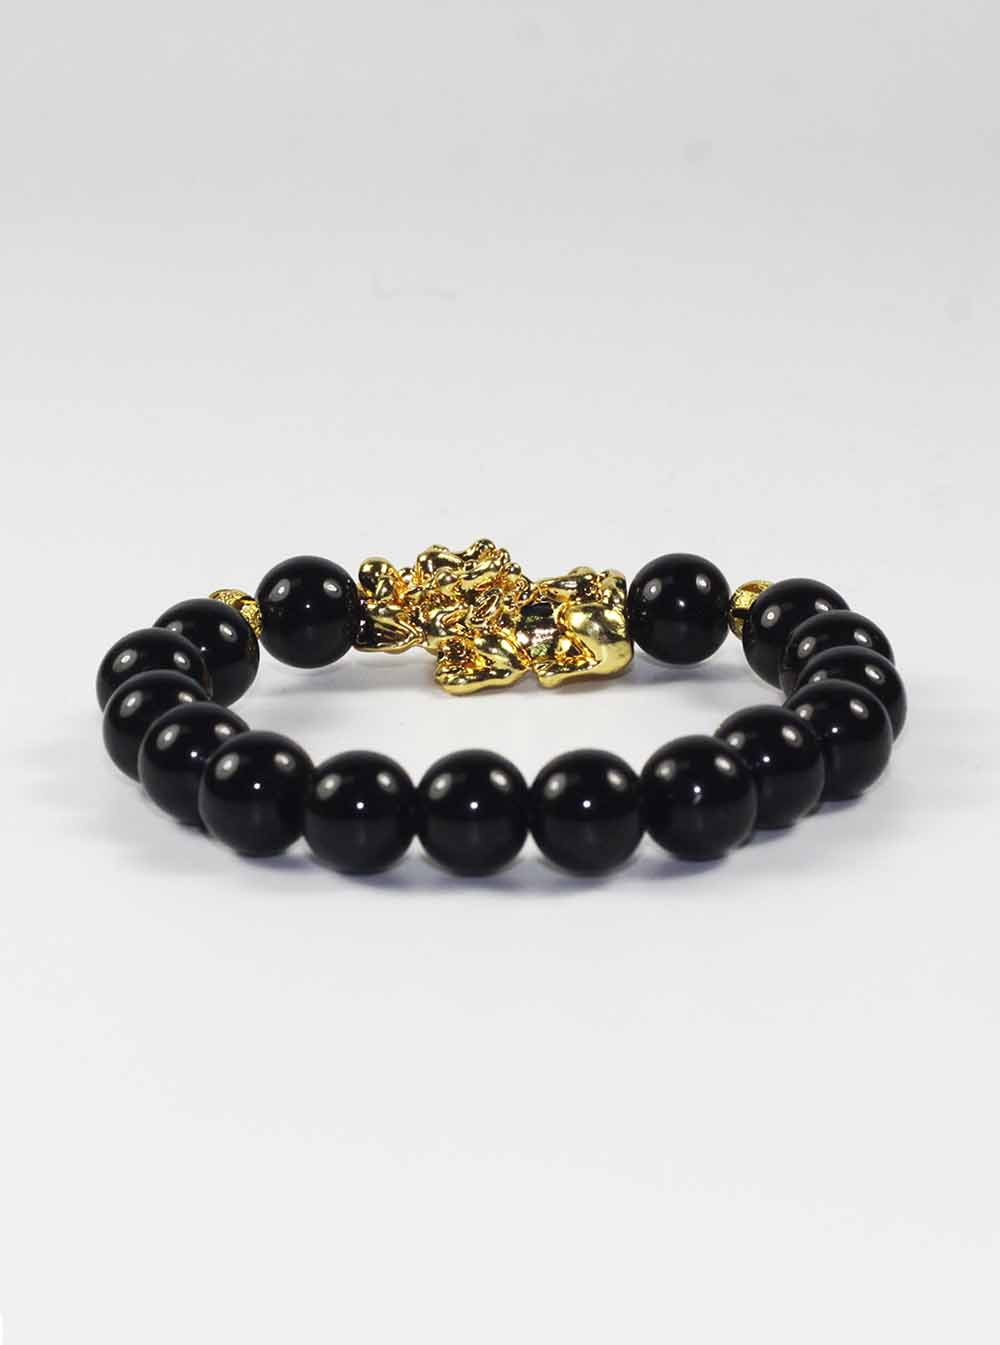 products obsidian aqua sterling silver pink black gold stone bracelet